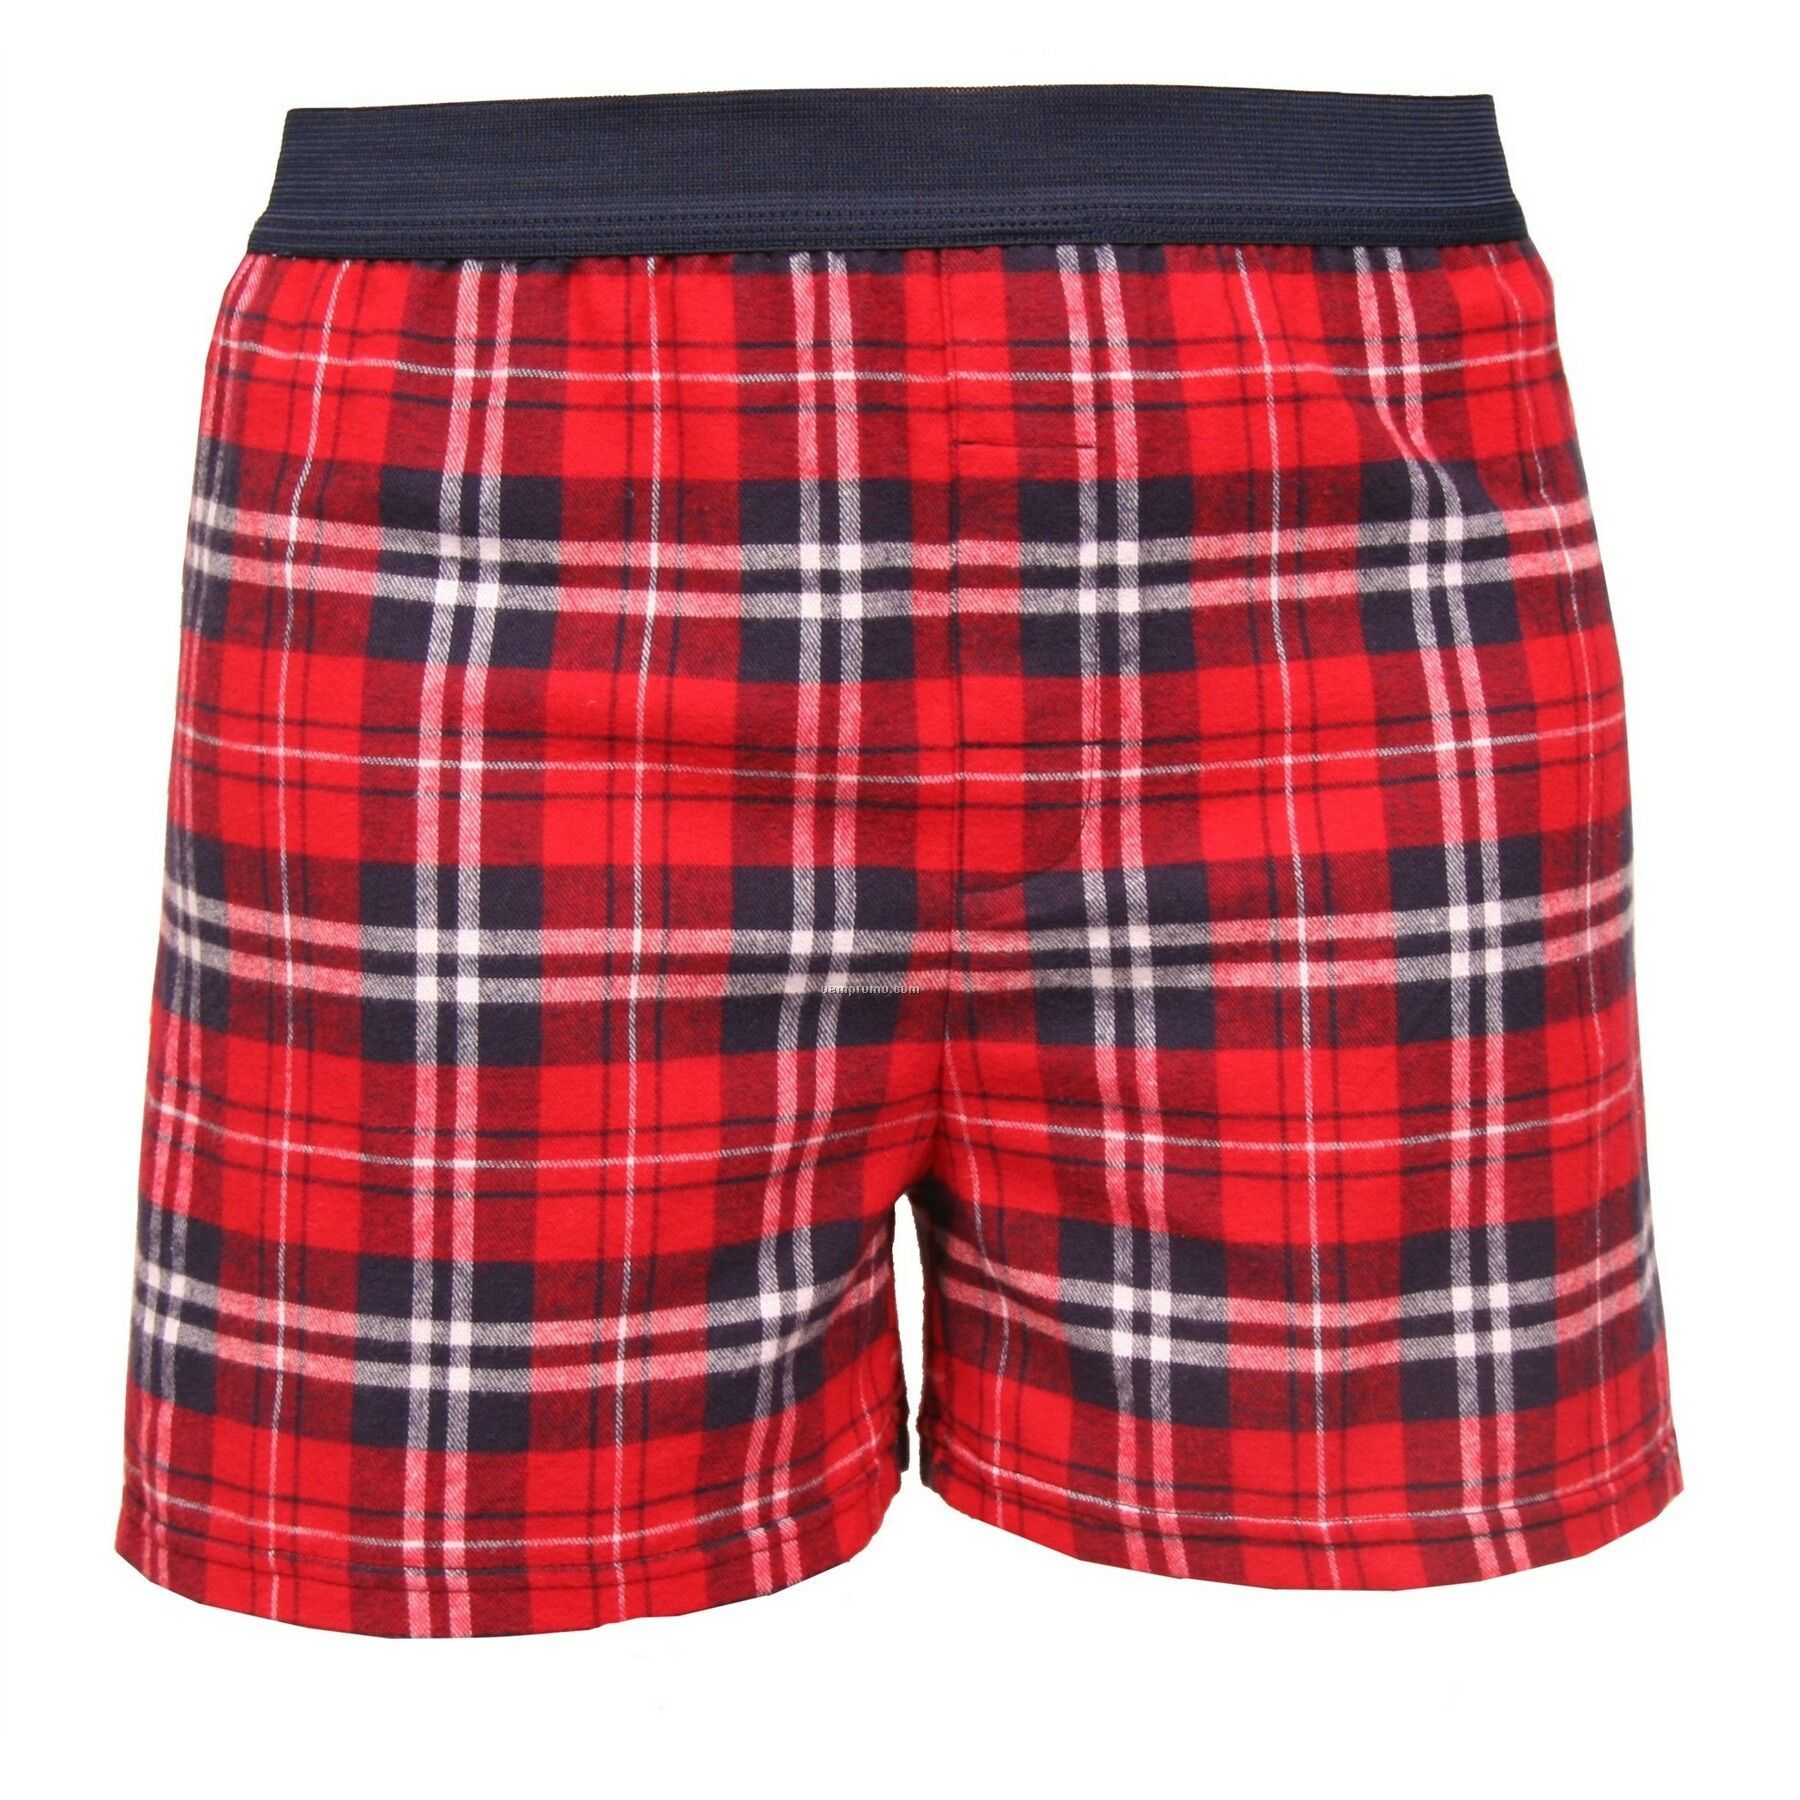 Youth Navy/Red Plaid Classic Boxer Short